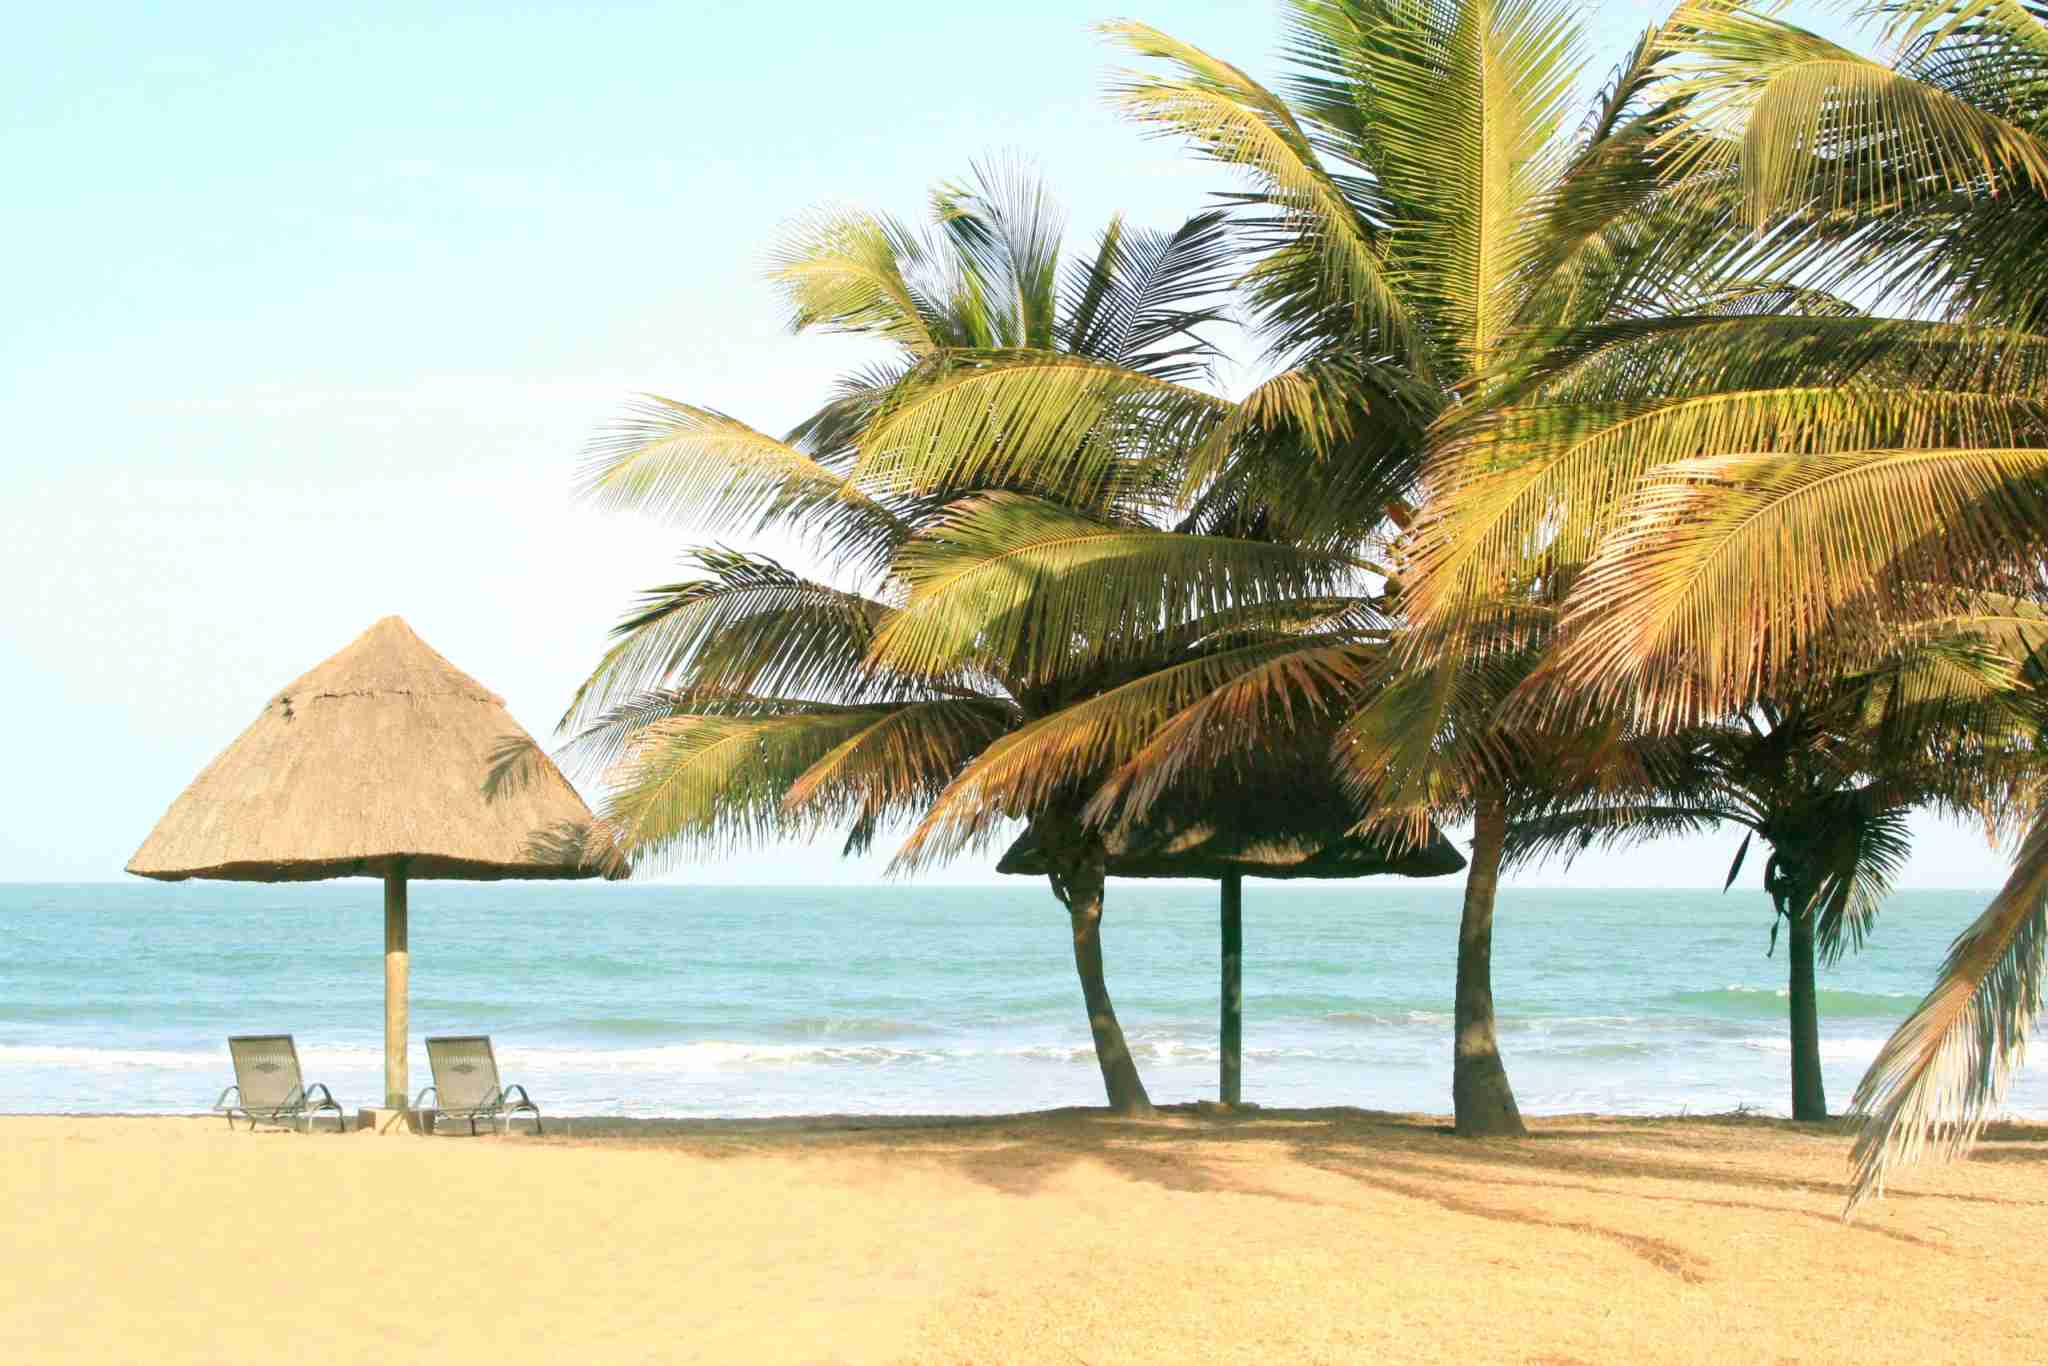 Beach in Banjul, Gambia (Photo by Zelg/Getty Images)